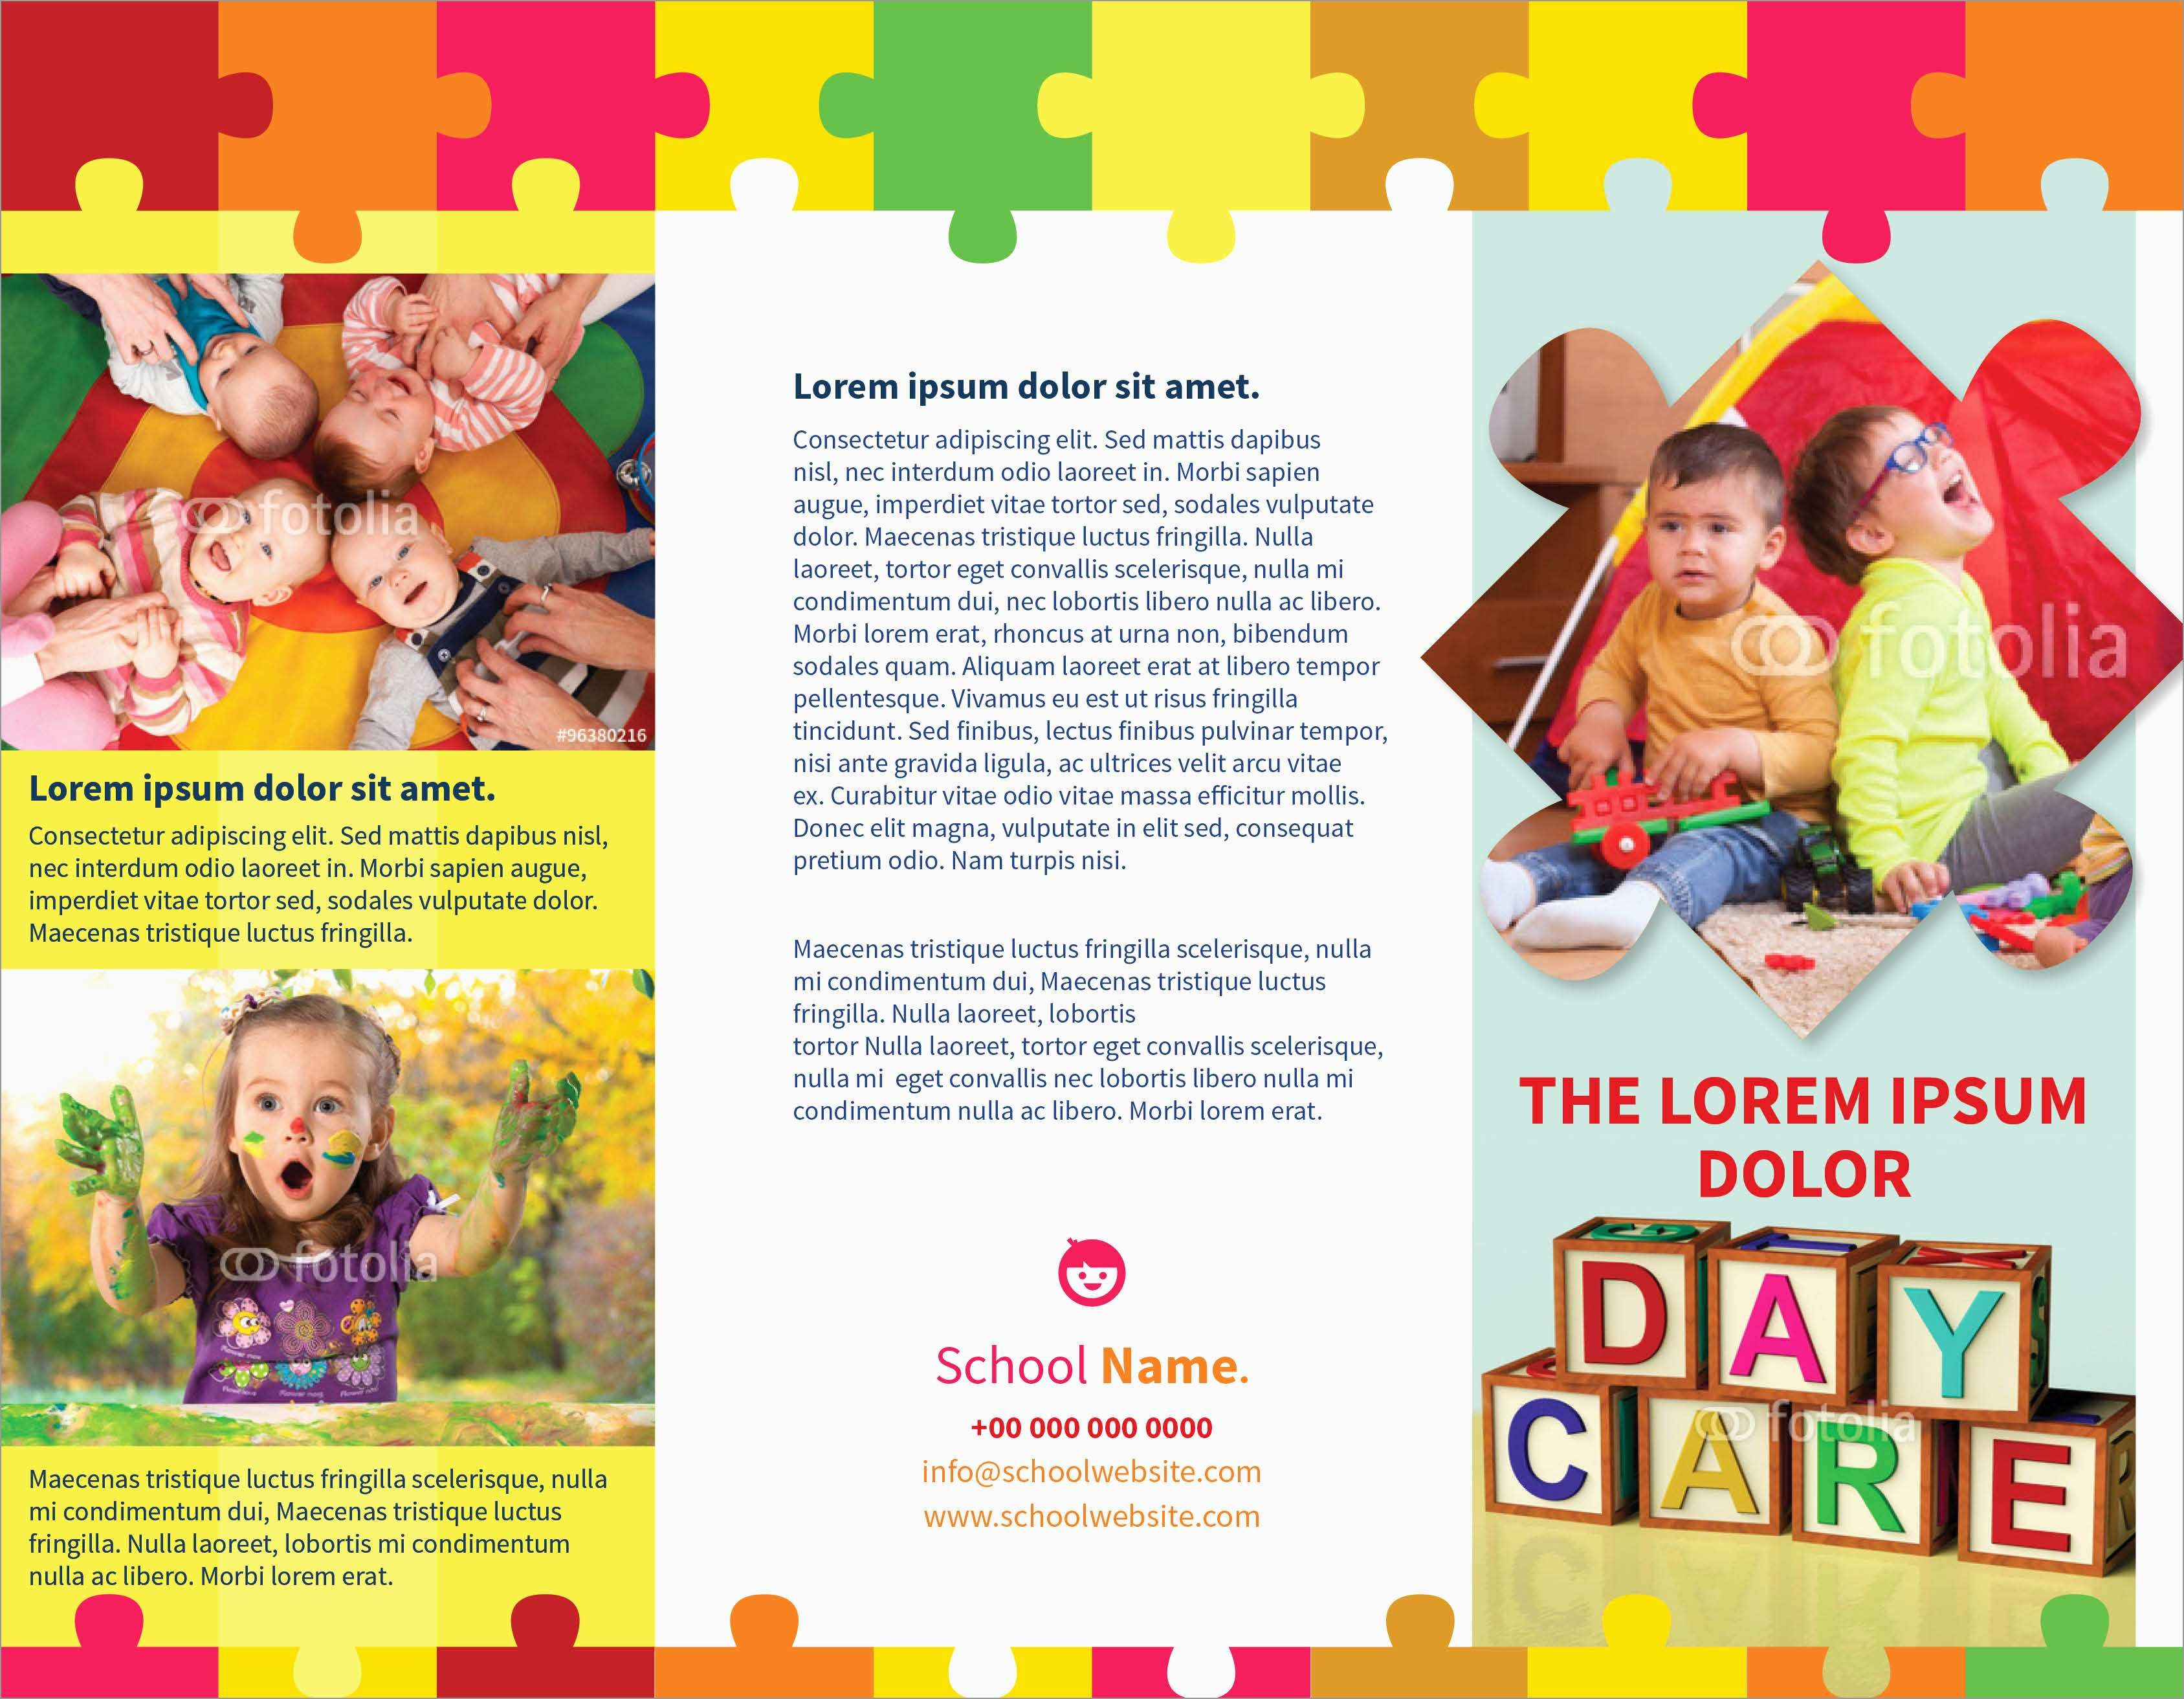 Home Daycare Flyers Free Templates Astonishing Day Care Brochure intended for Daycare Brochure Template